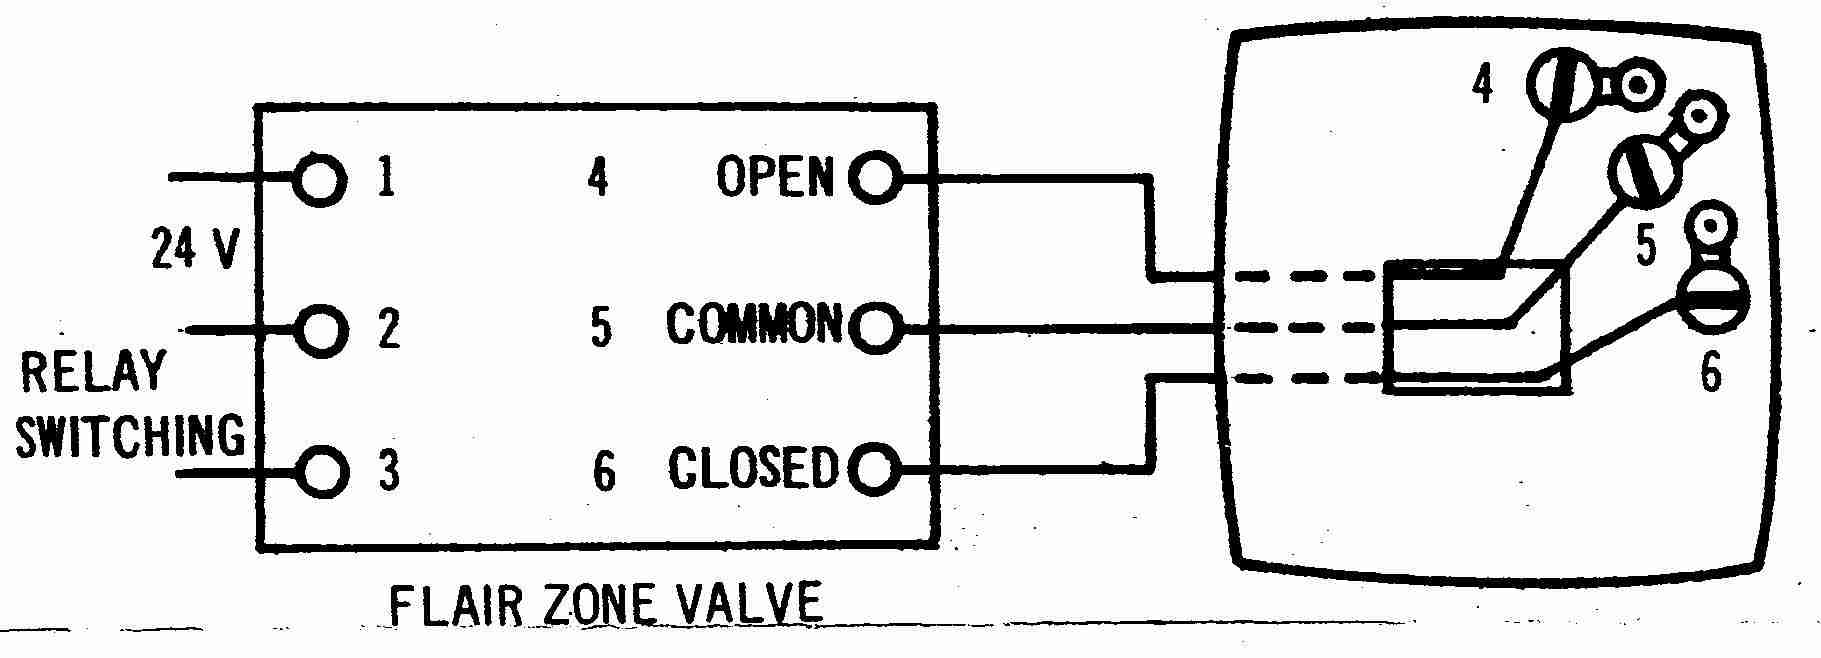 Flair3w_001_DJFc2 zone valve wiring installation & instructions guide to heating zone valve wiring diagram at aneh.co